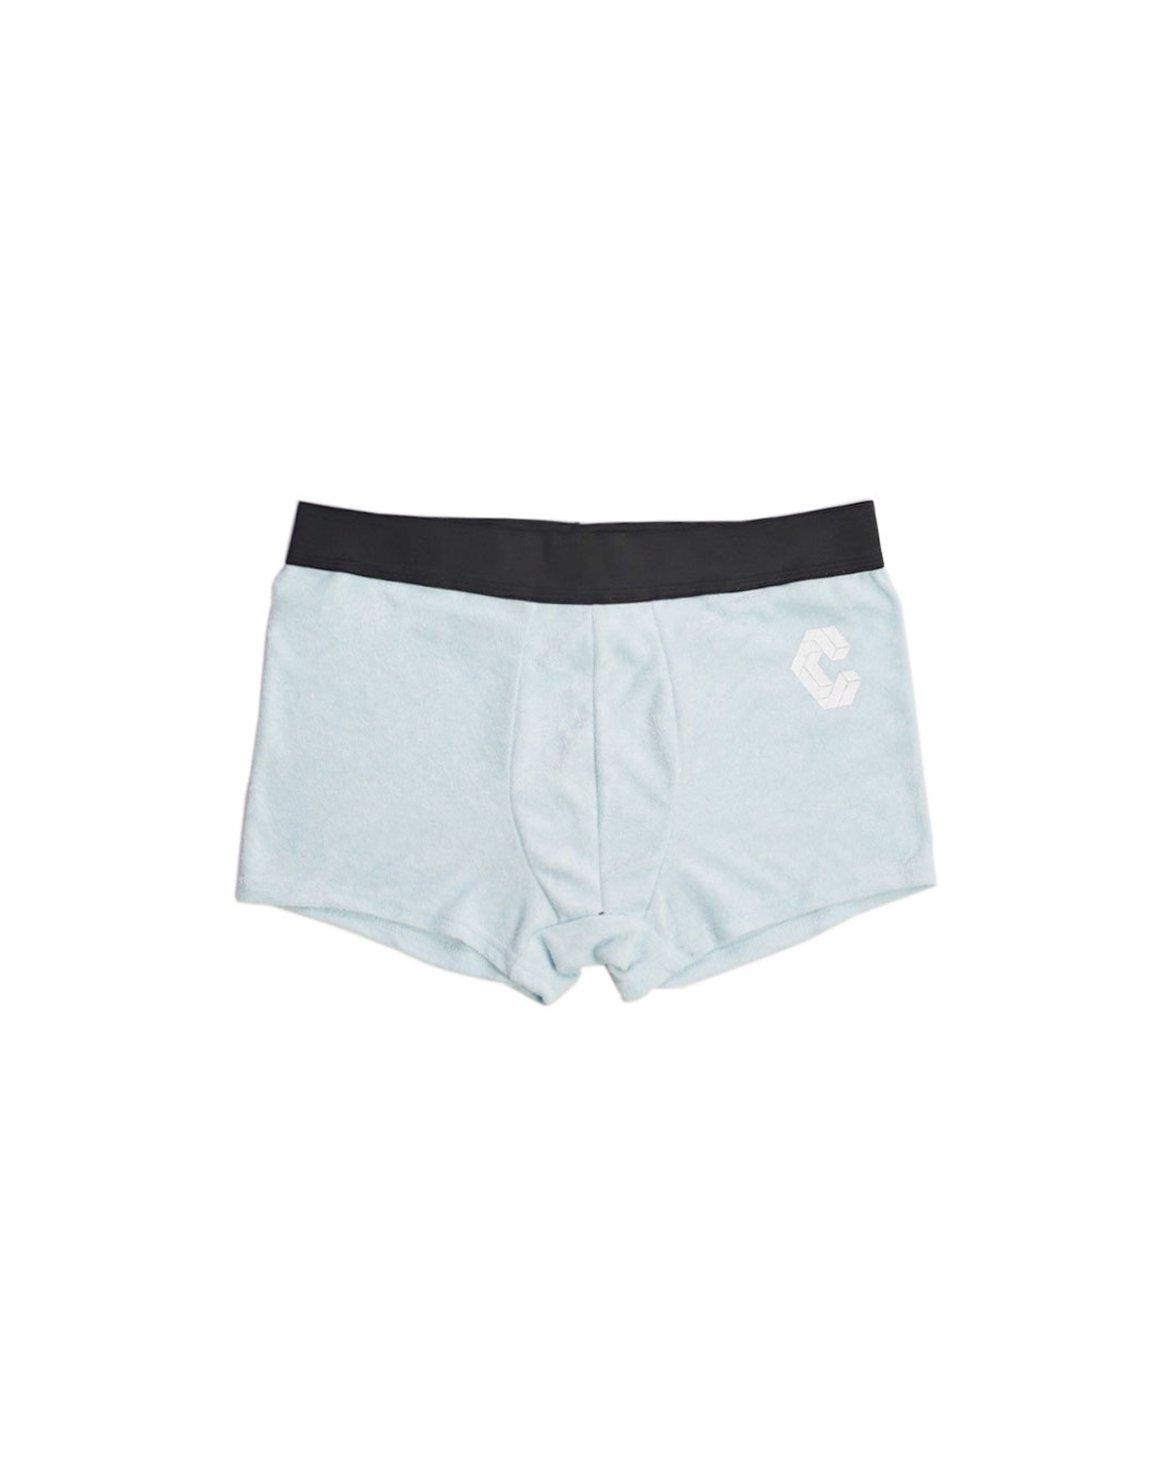 <img class='new_mark_img1' src='https://img.shop-pro.jp/img/new/icons1.gif' style='border:none;display:inline;margin:0px;padding:0px;width:auto;' />LOGO BOXER PANTS 01 BLUE